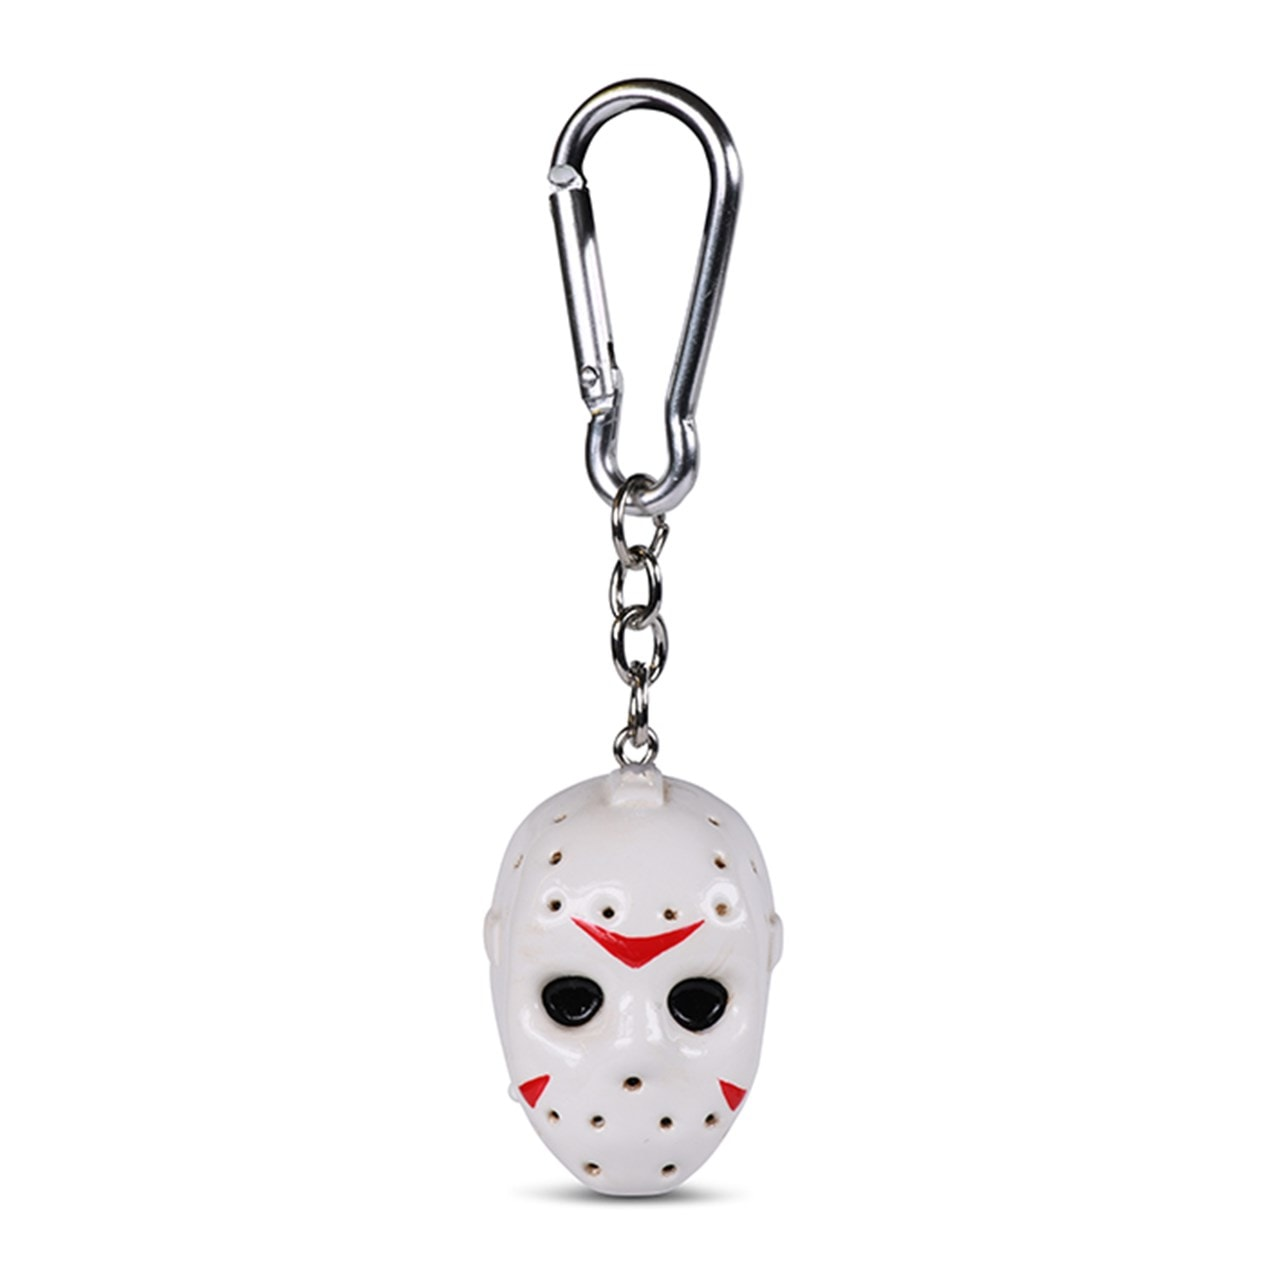 Friday The 13th 3D Keychain - 2